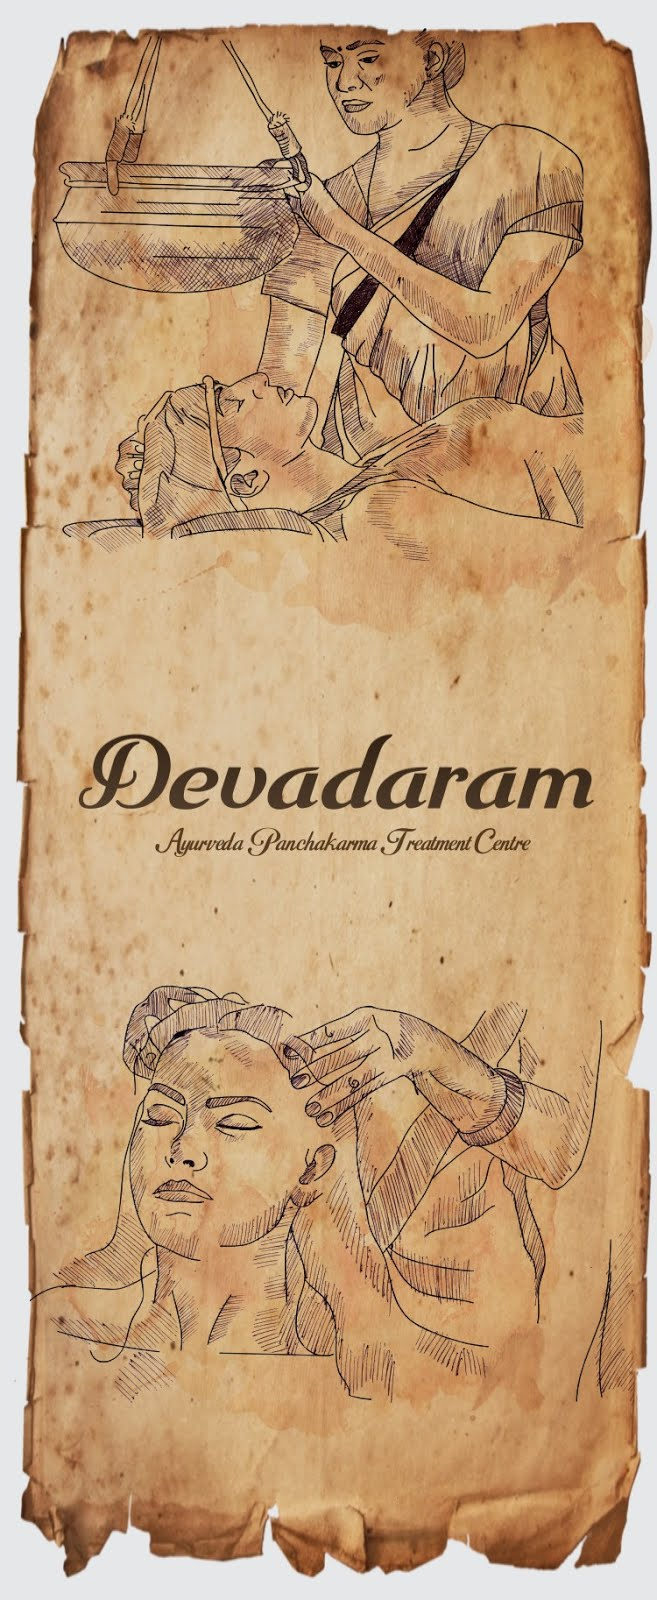 Our New Division for General Treatments - Devadaram